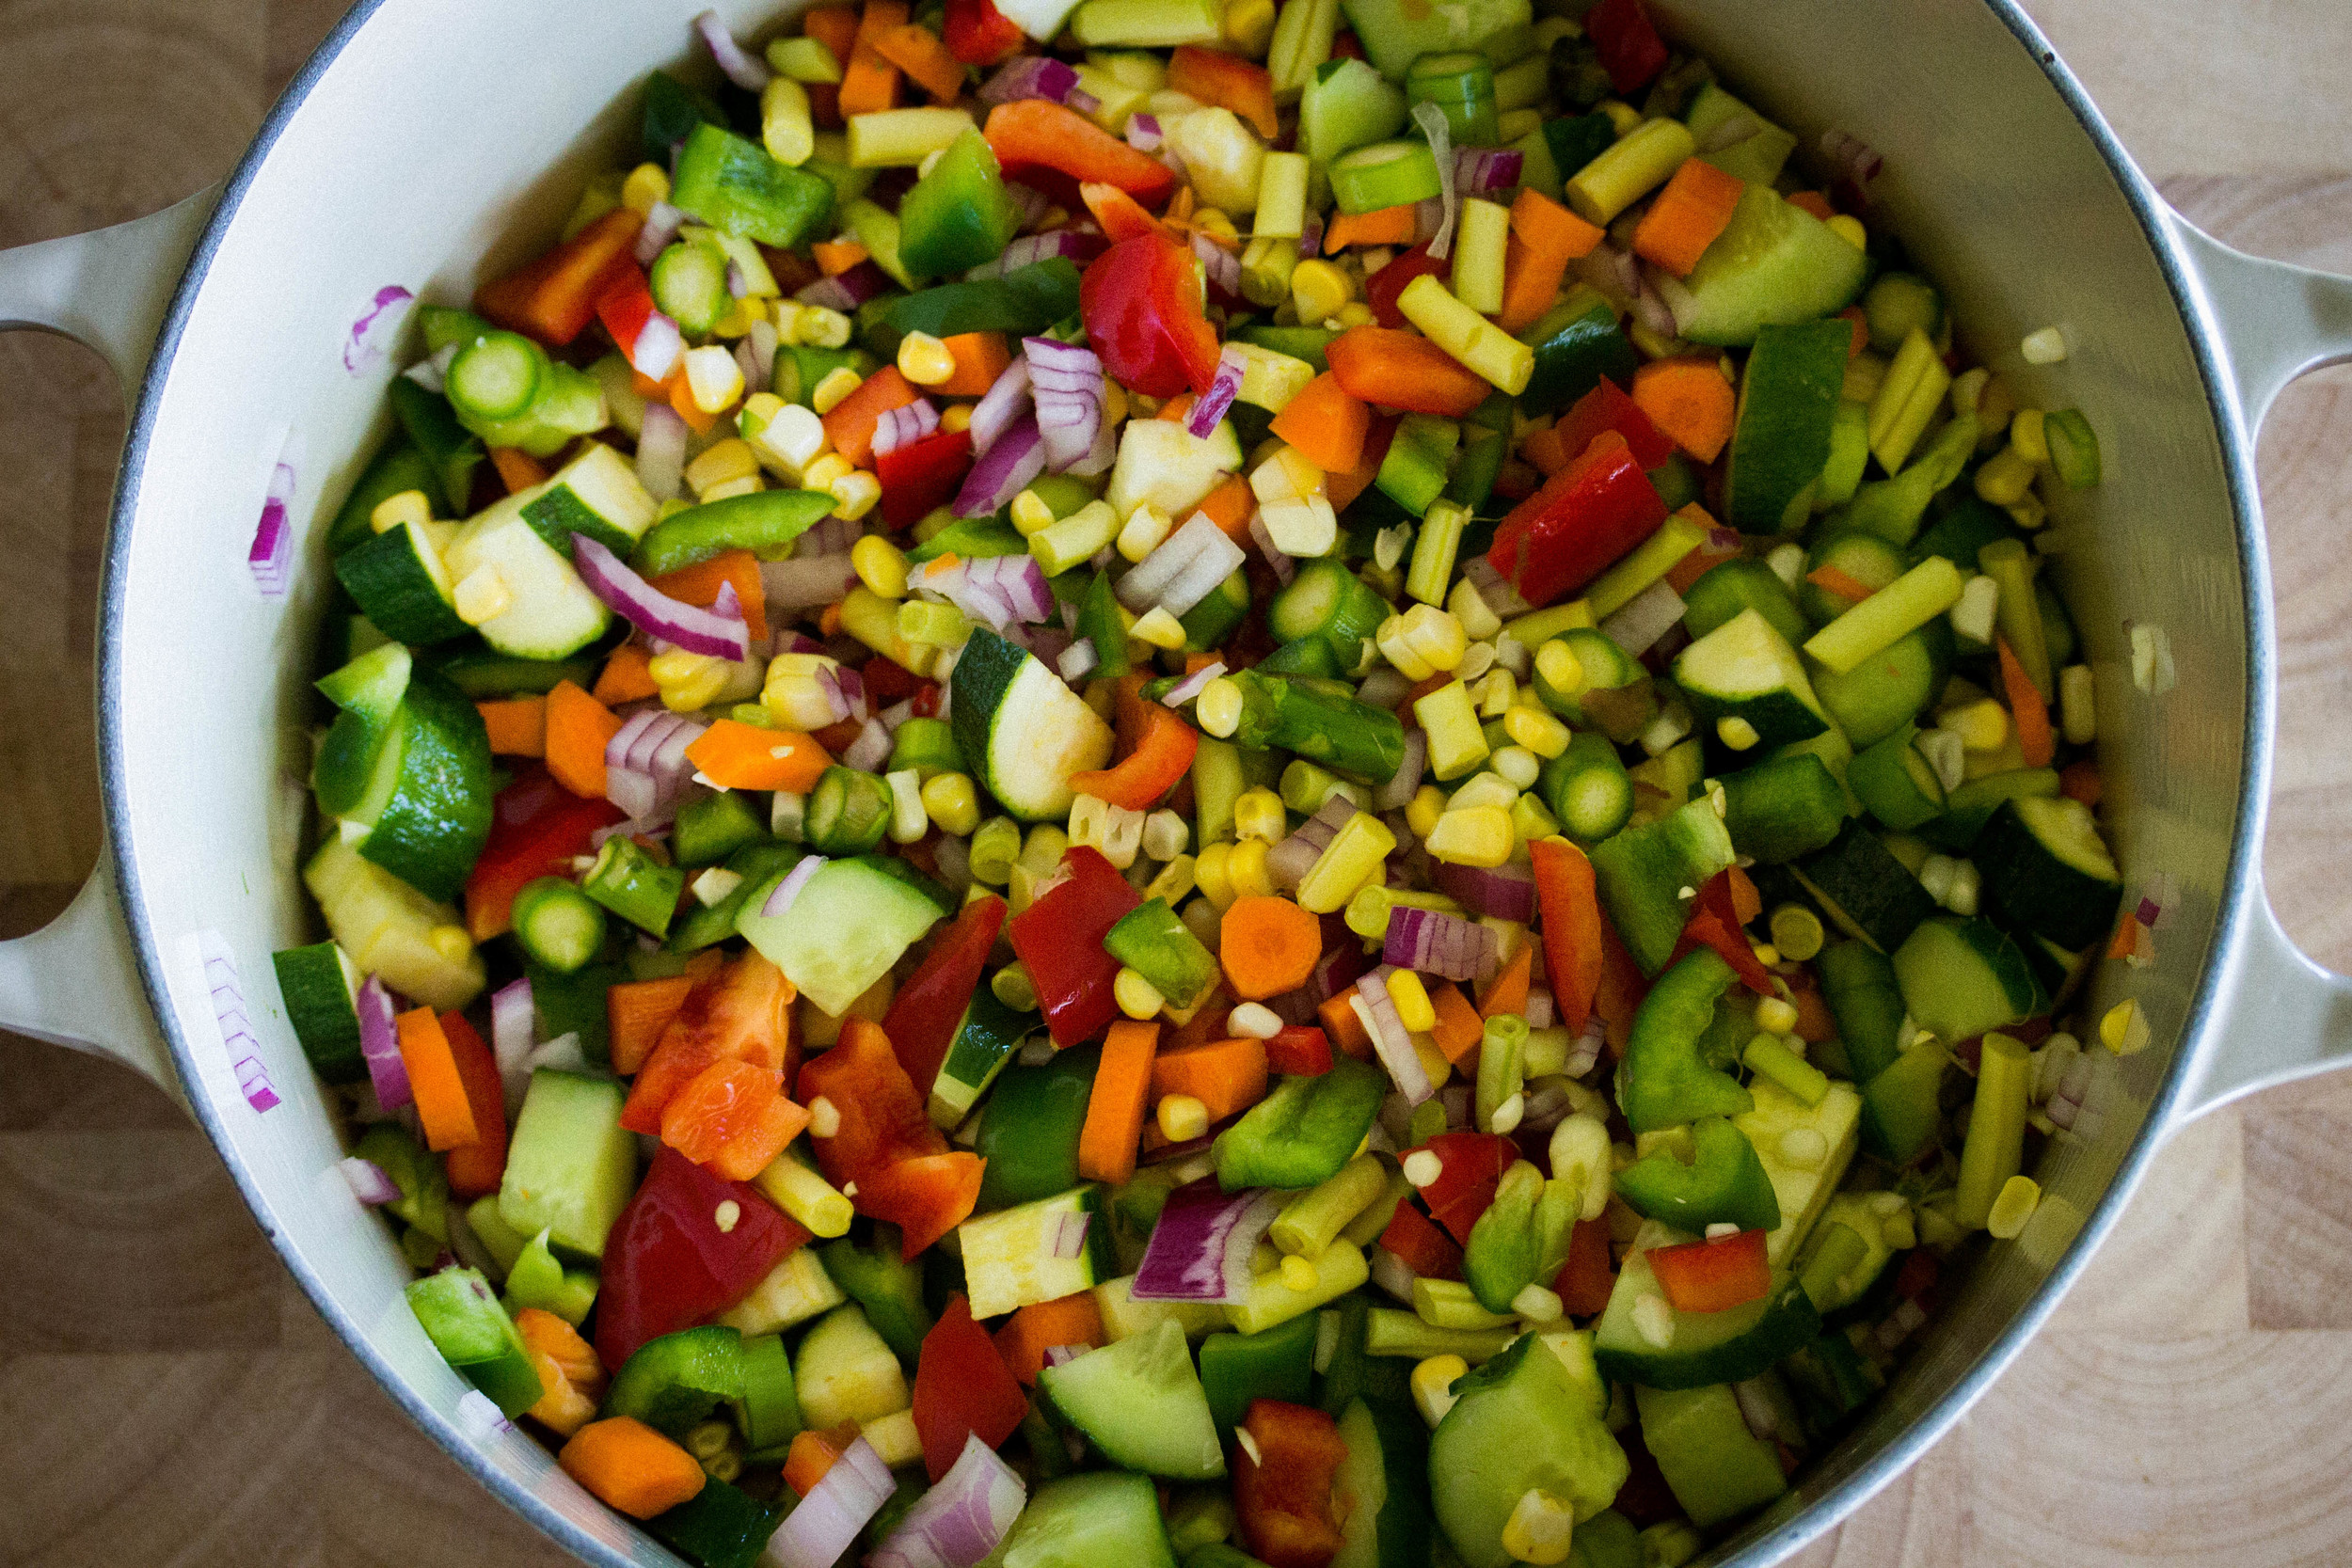 Finely chop veggies and add them to a large pot